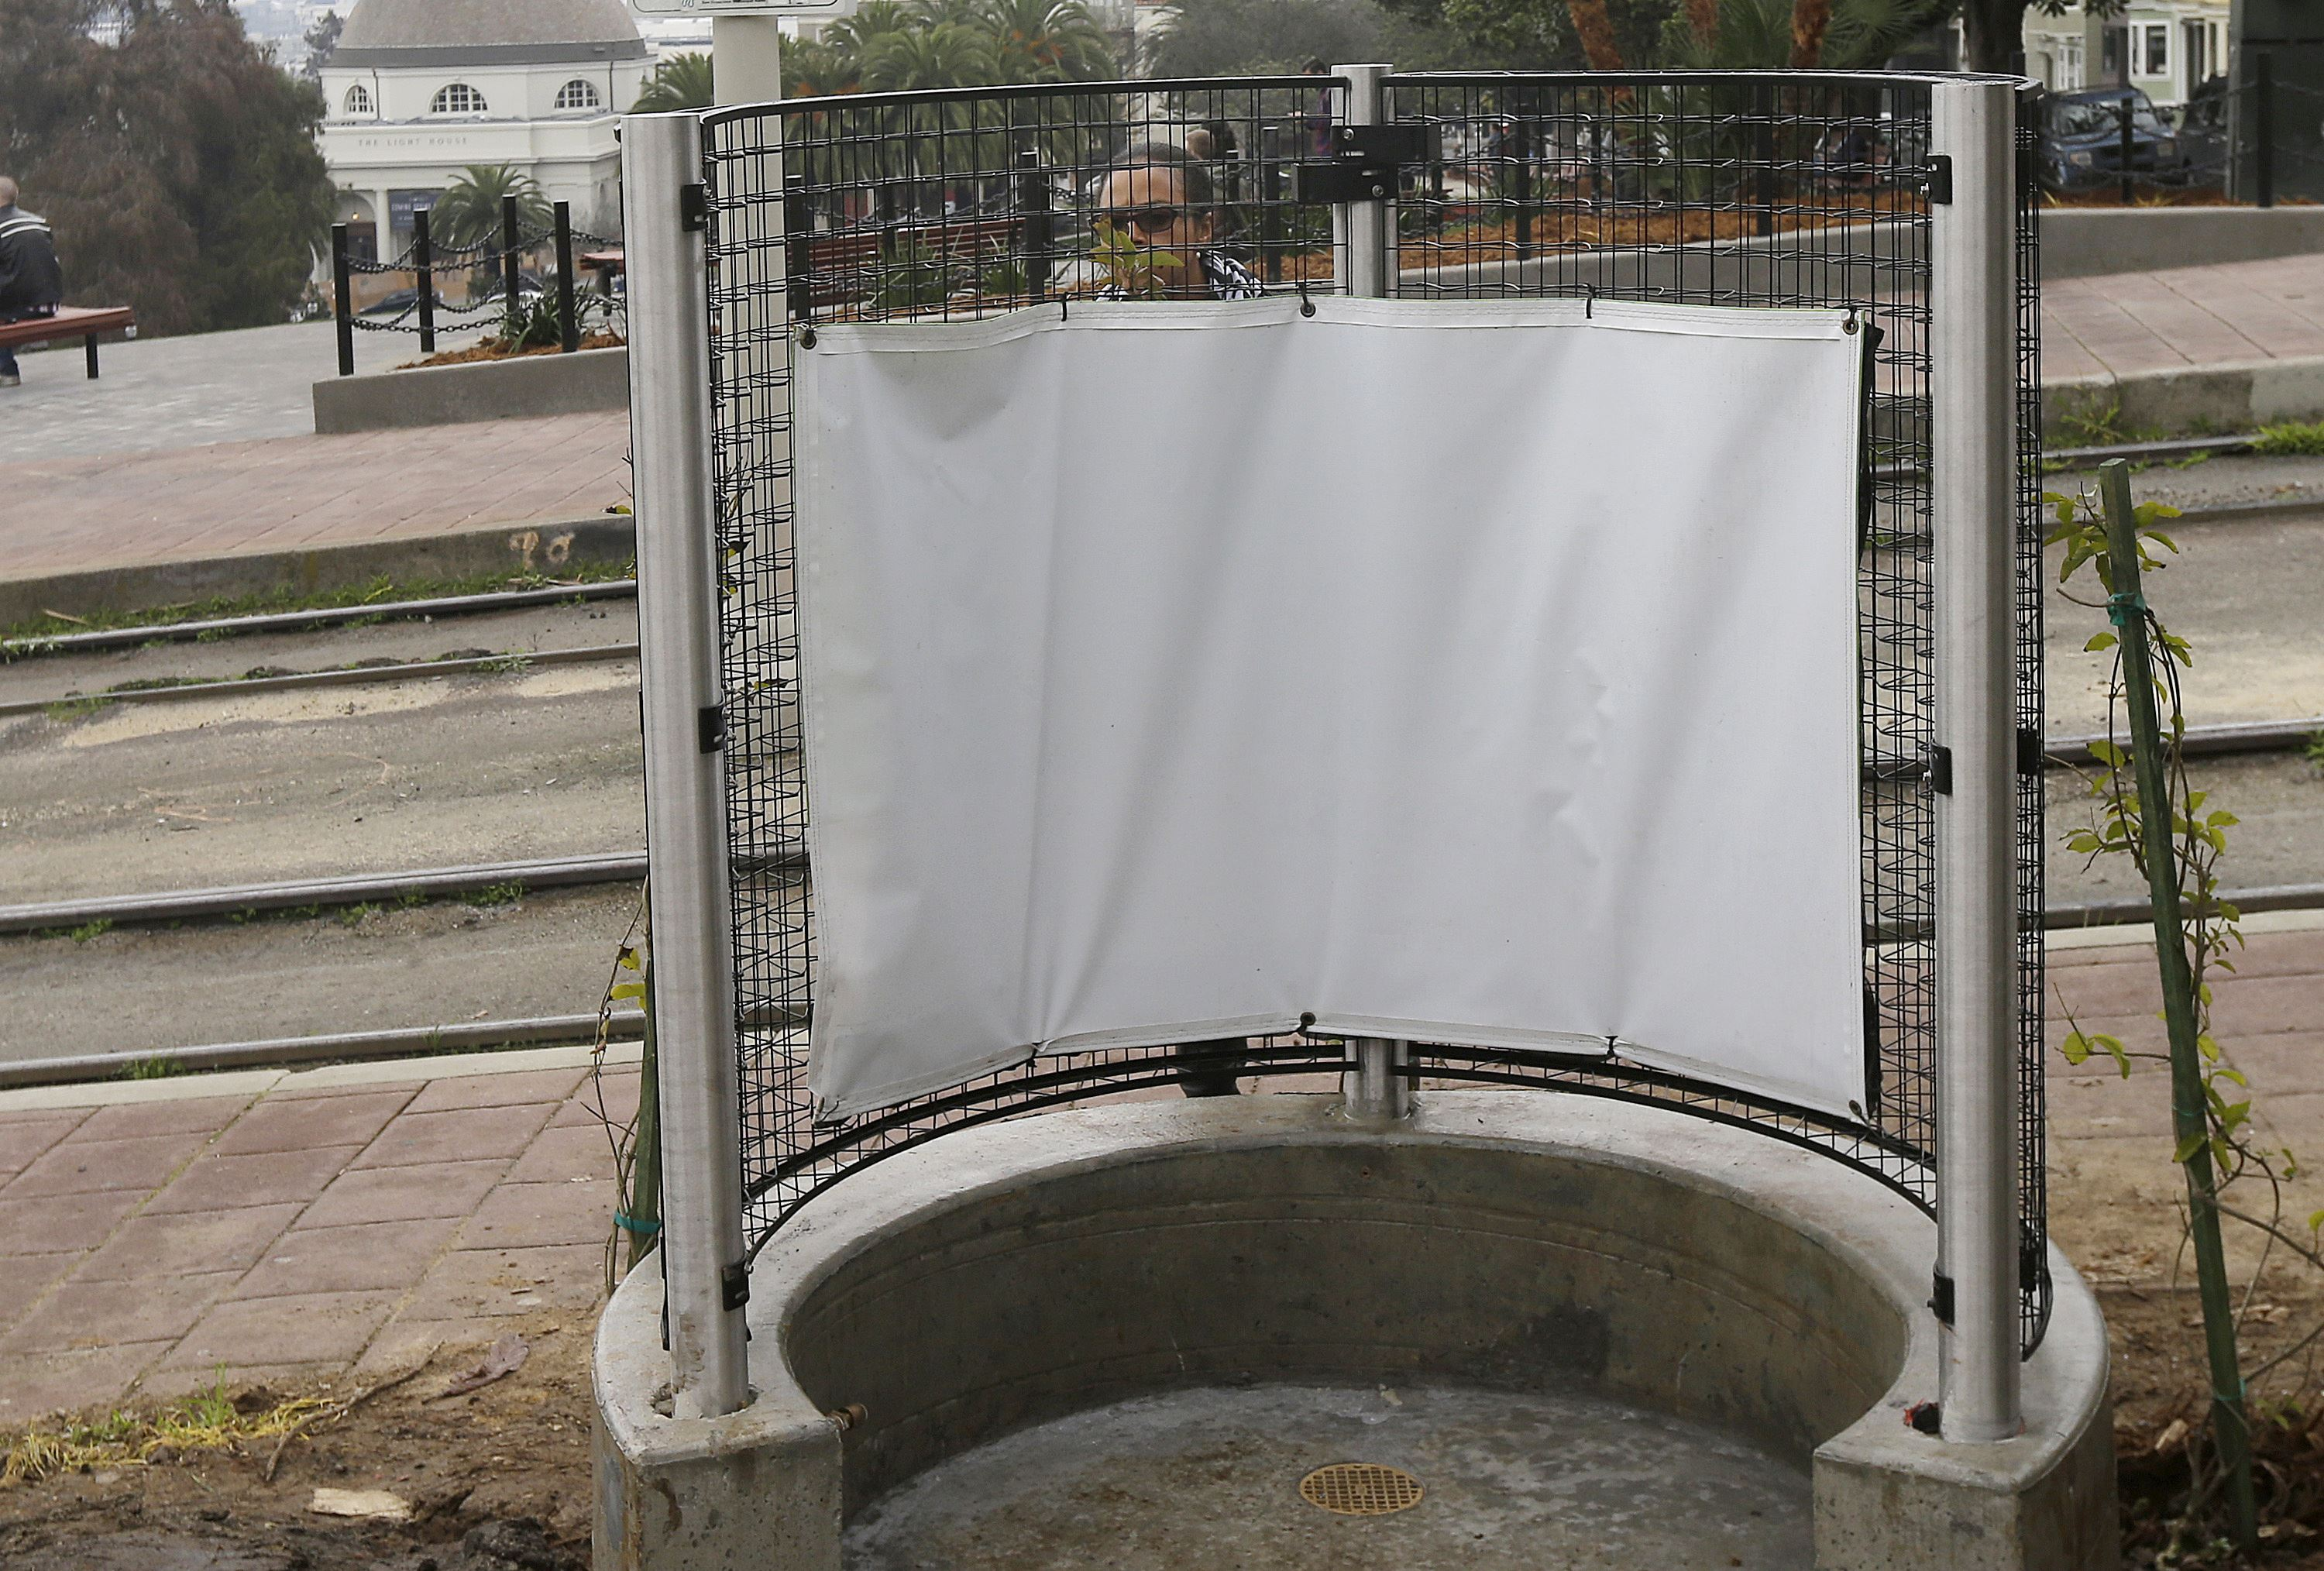 Paris' Open-Air Urinals Called 'Immodest, Ugly'